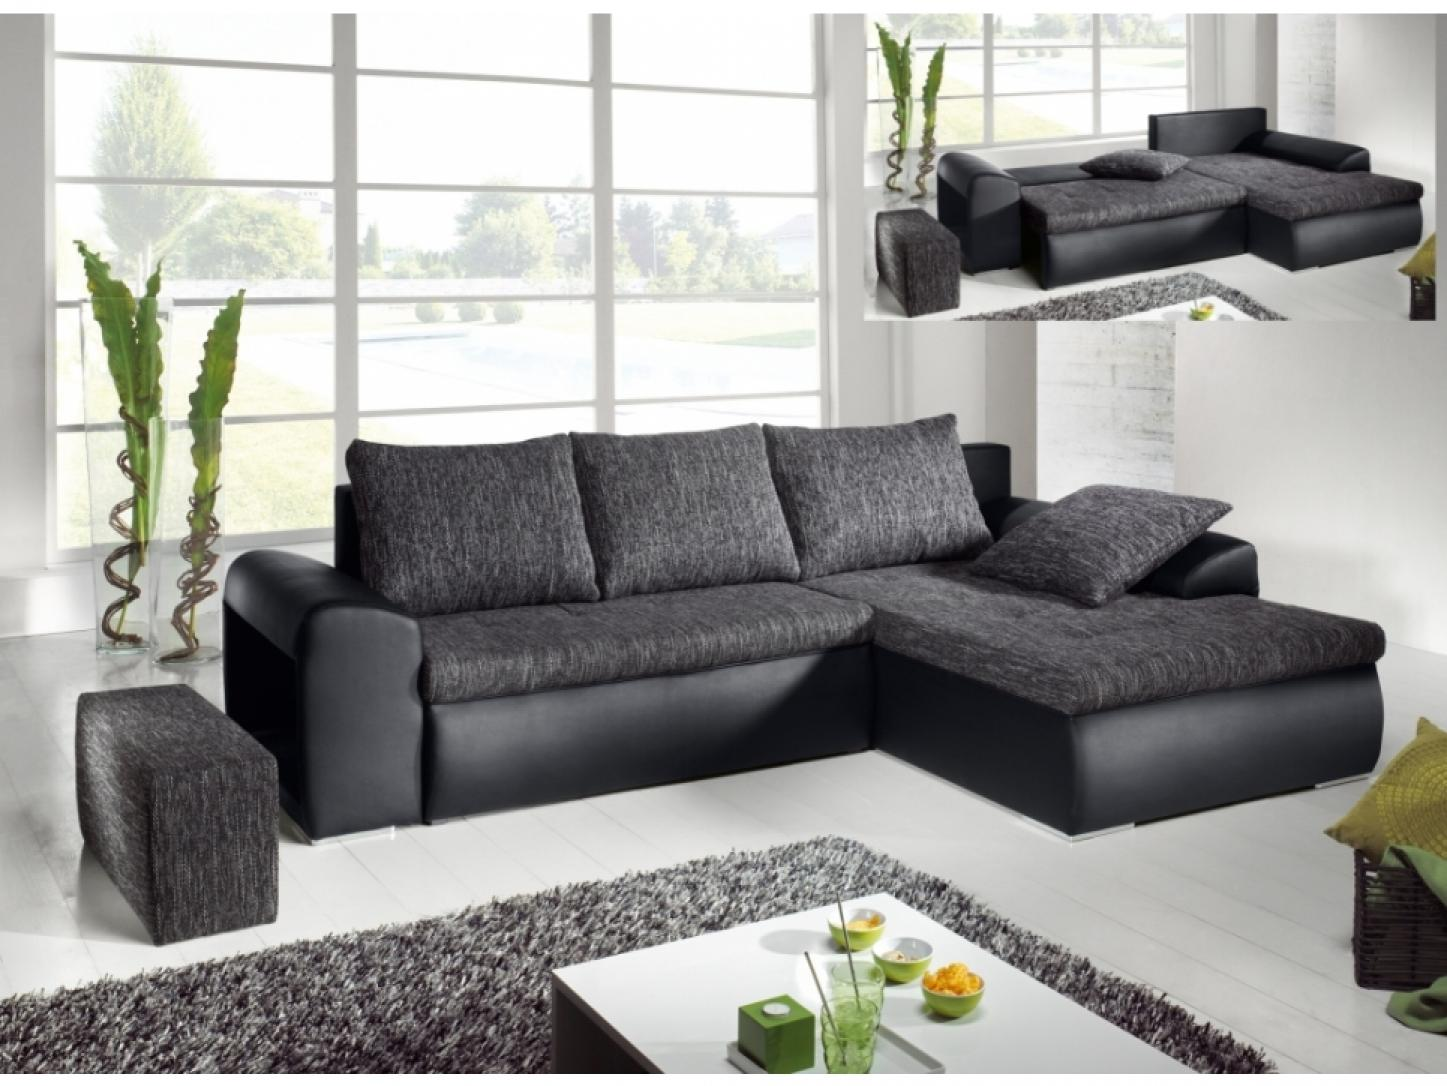 photos canap d 39 angle gris chin convertible. Black Bedroom Furniture Sets. Home Design Ideas